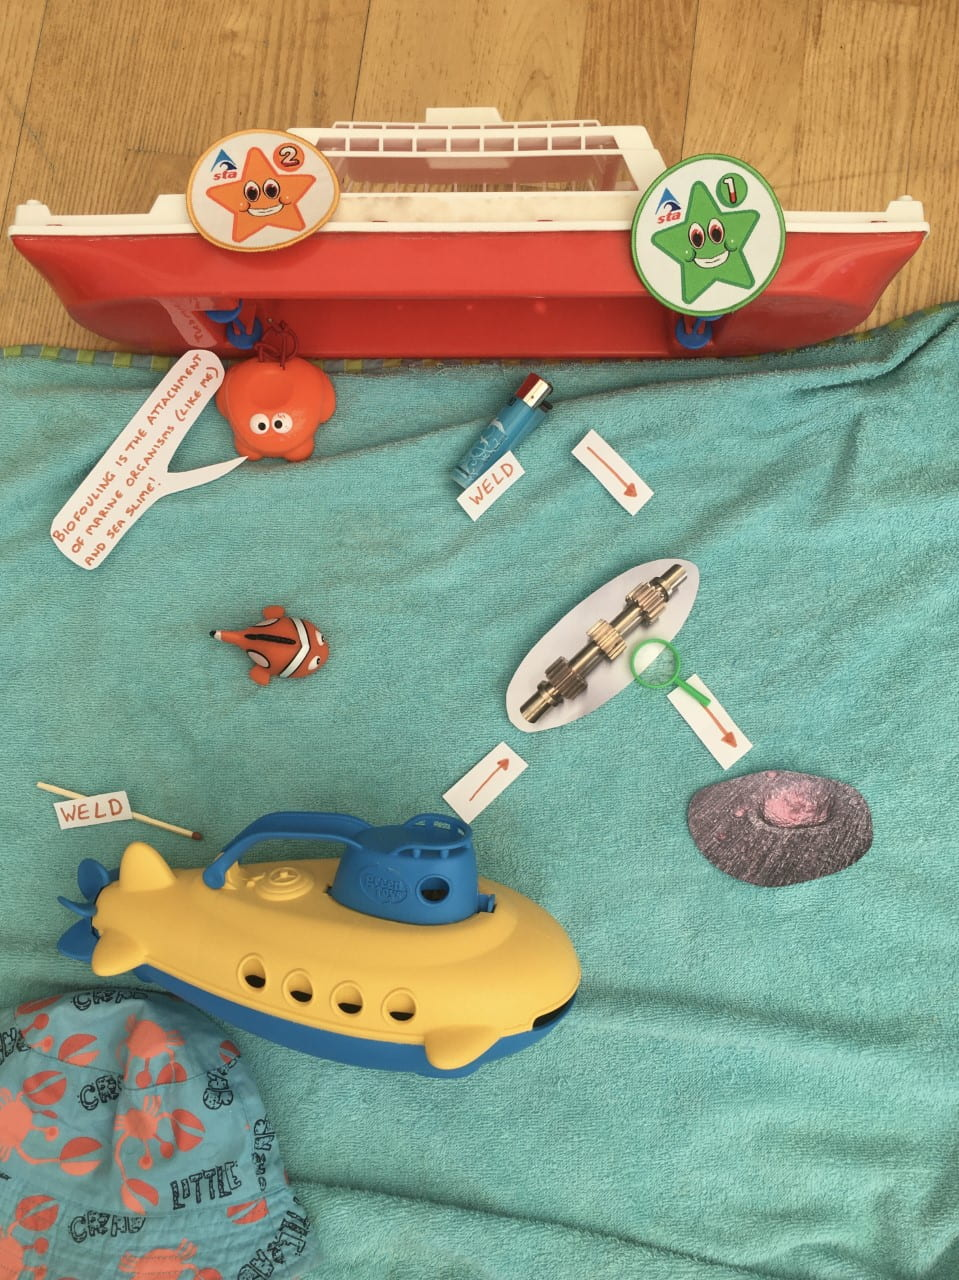 A toy boat with a towel beneath it. On top of the towel, which is intended to look like the sea, are: a lighter (labelled 'weld'); a toy frog (which is saying 'biofouling is the attachment of marine organisms (like me) and sea slime!); some toy fish; a metal gear; a toy submarine; a shell. Next to the submarine is a match (labelled 'weld').